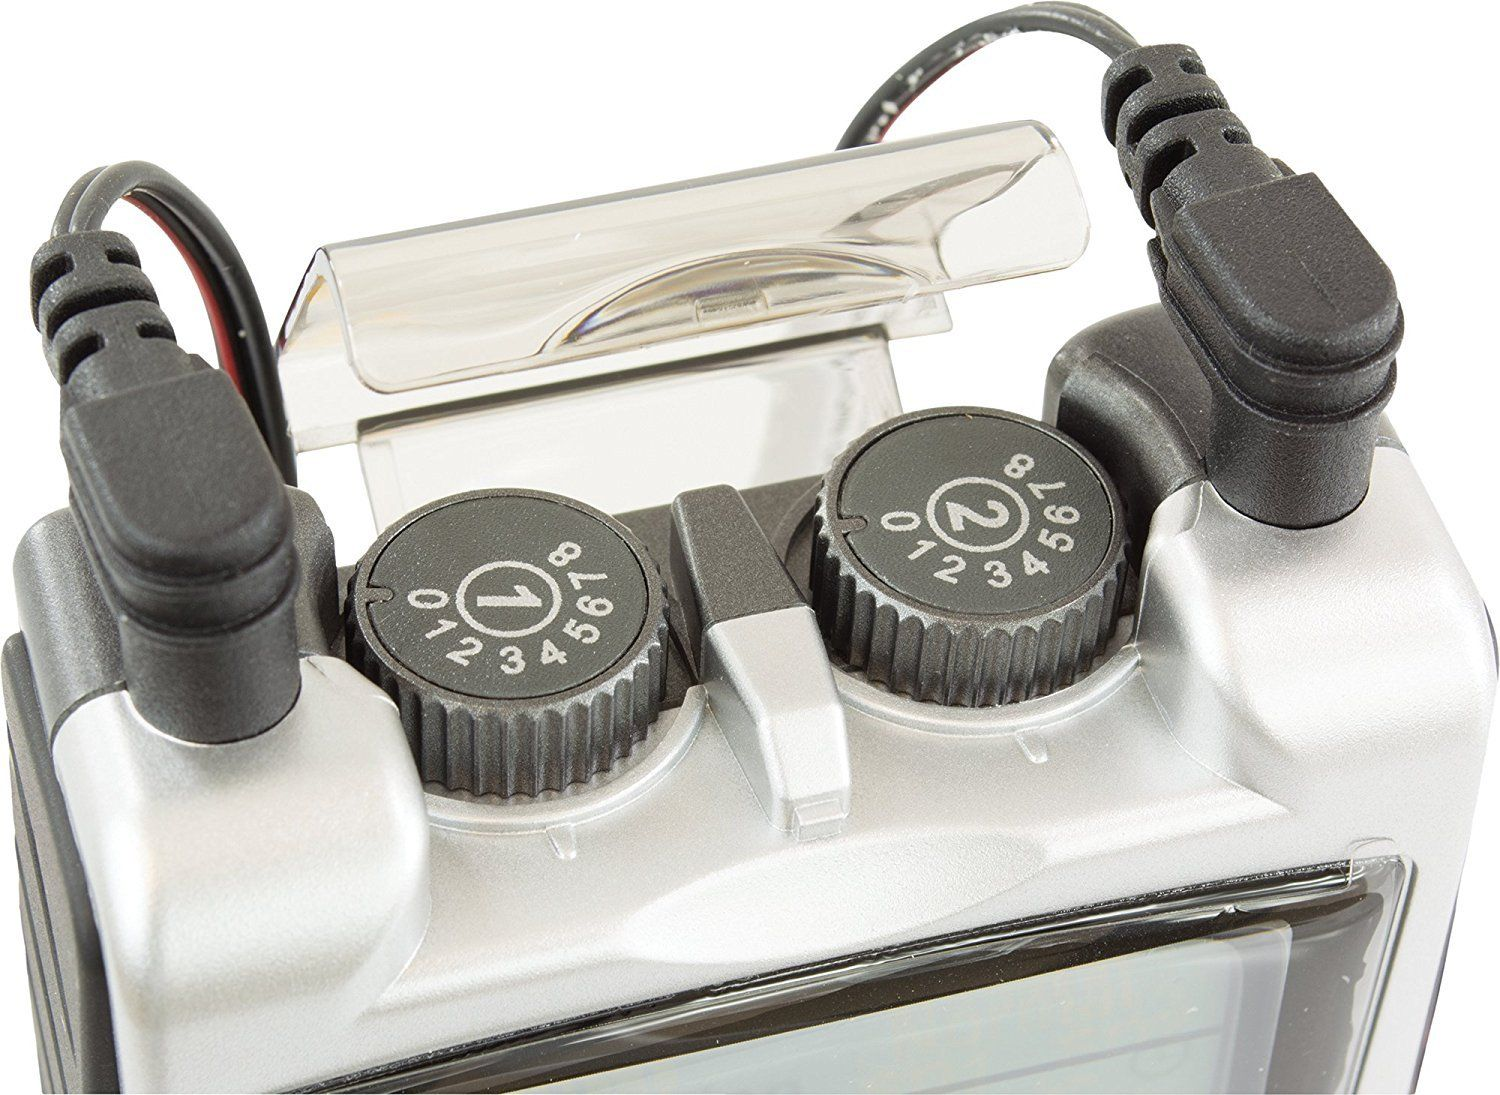 TENS 7000 2nd Edition Digital TENS Unit With Accessories Dual Channel Knobs: photo